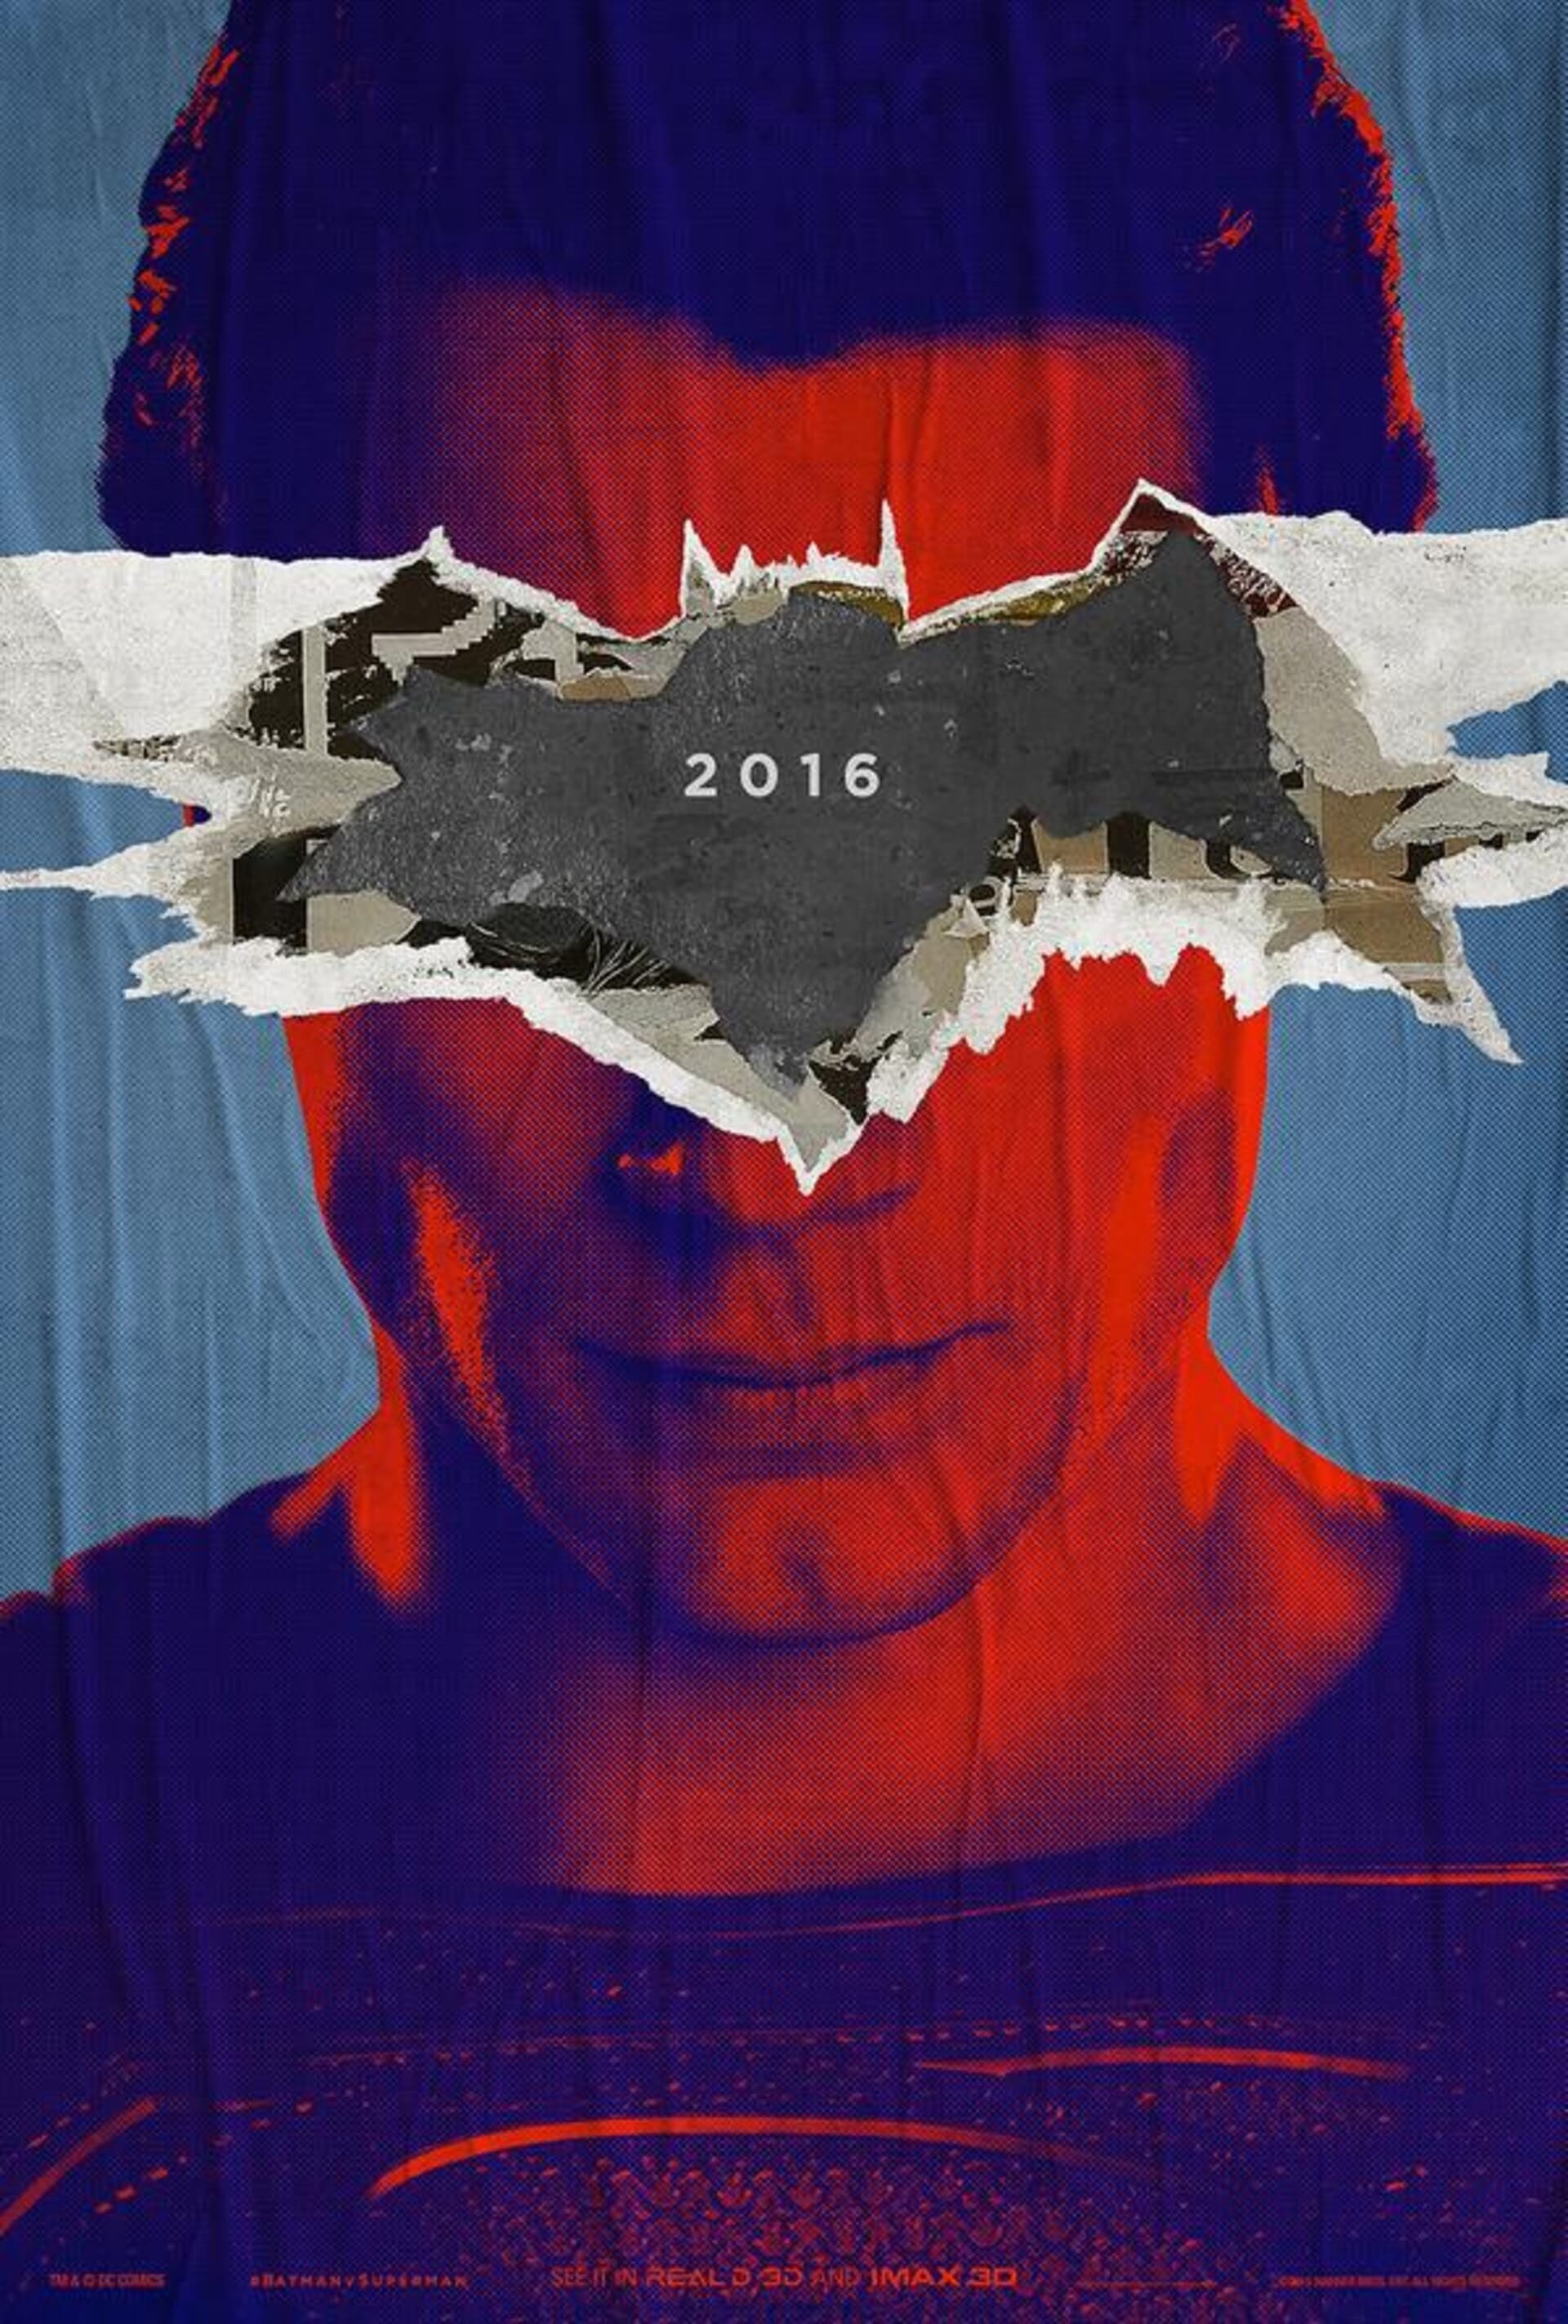 Batman v Superman: Dawn of Justice - Poster 3